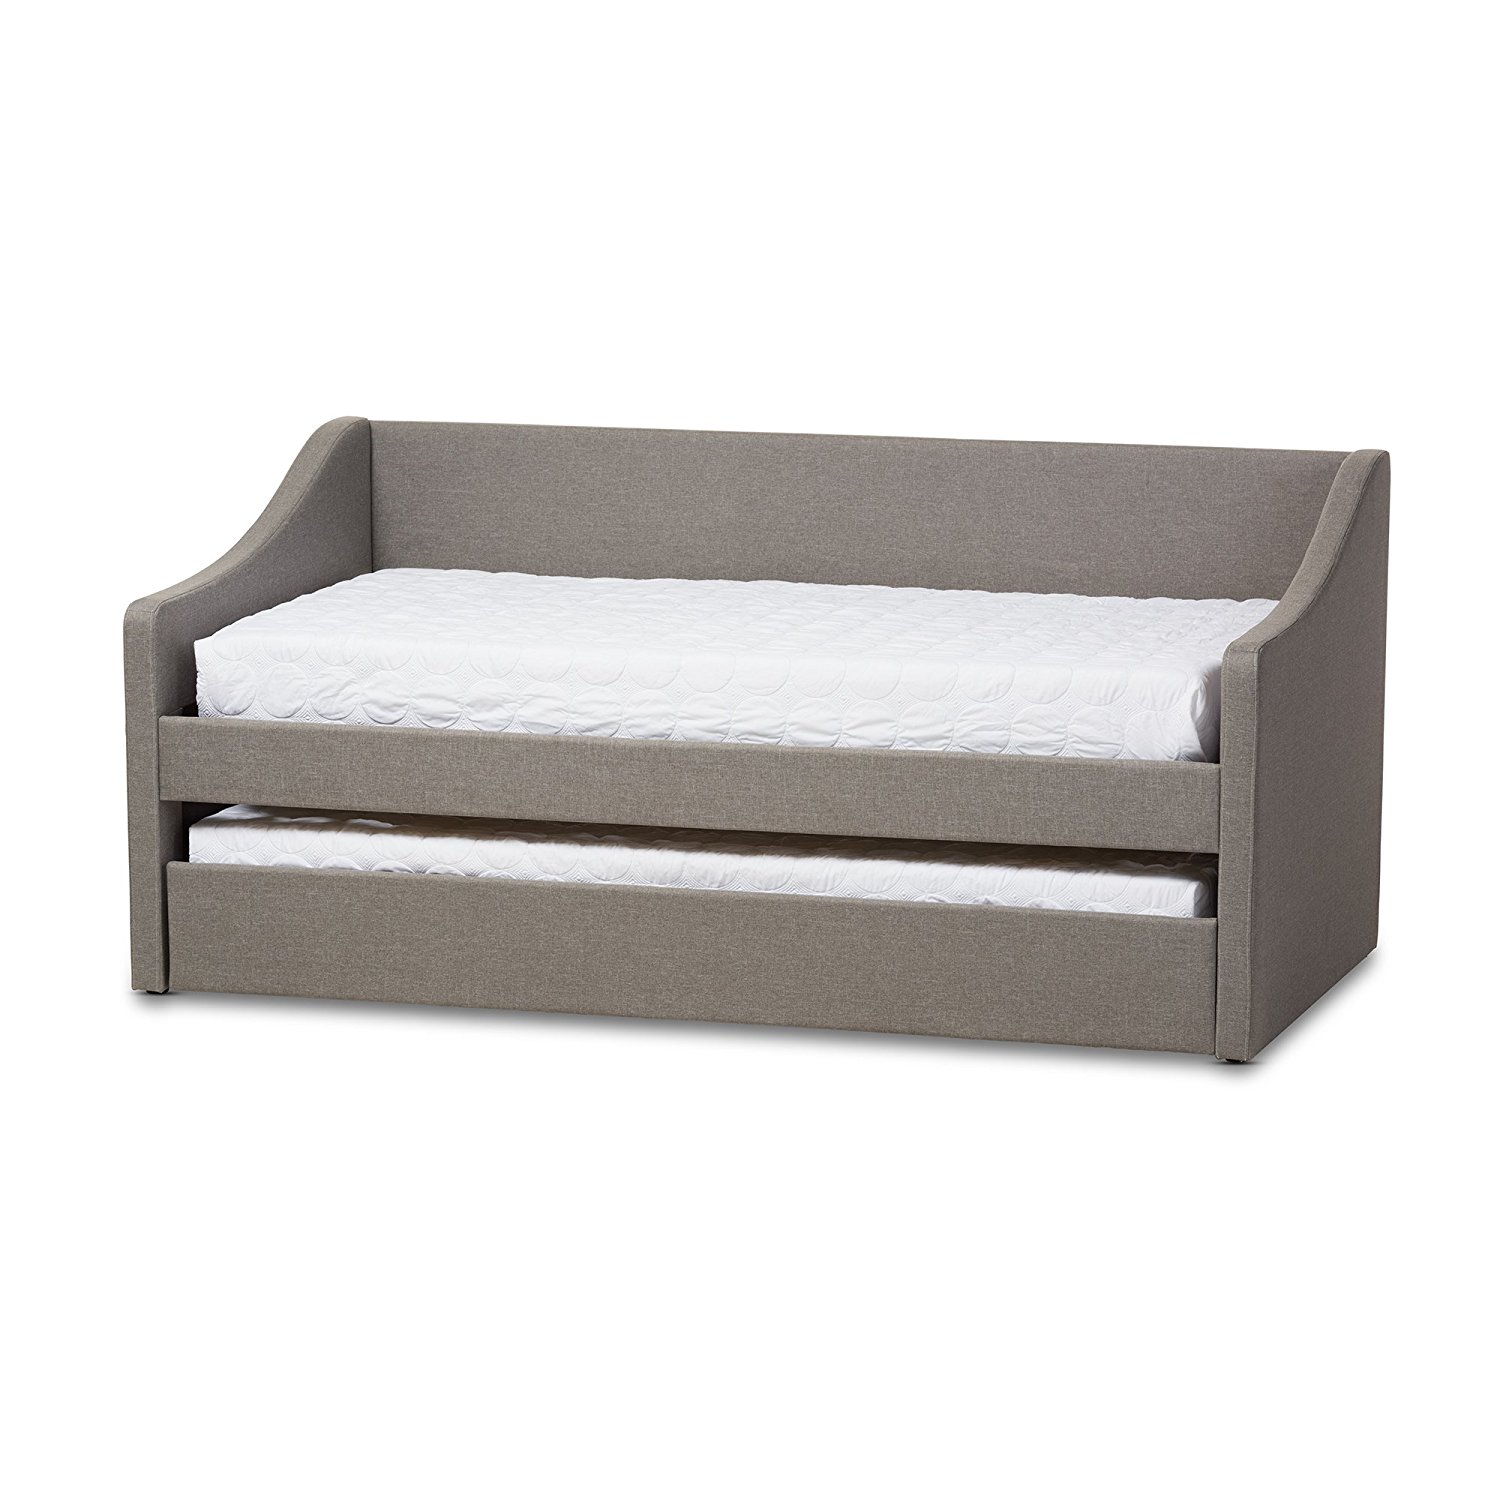 Baxton Studio Cera Fabric Upholstered Daybed with Guest Trundle Bed, Twin, Grey